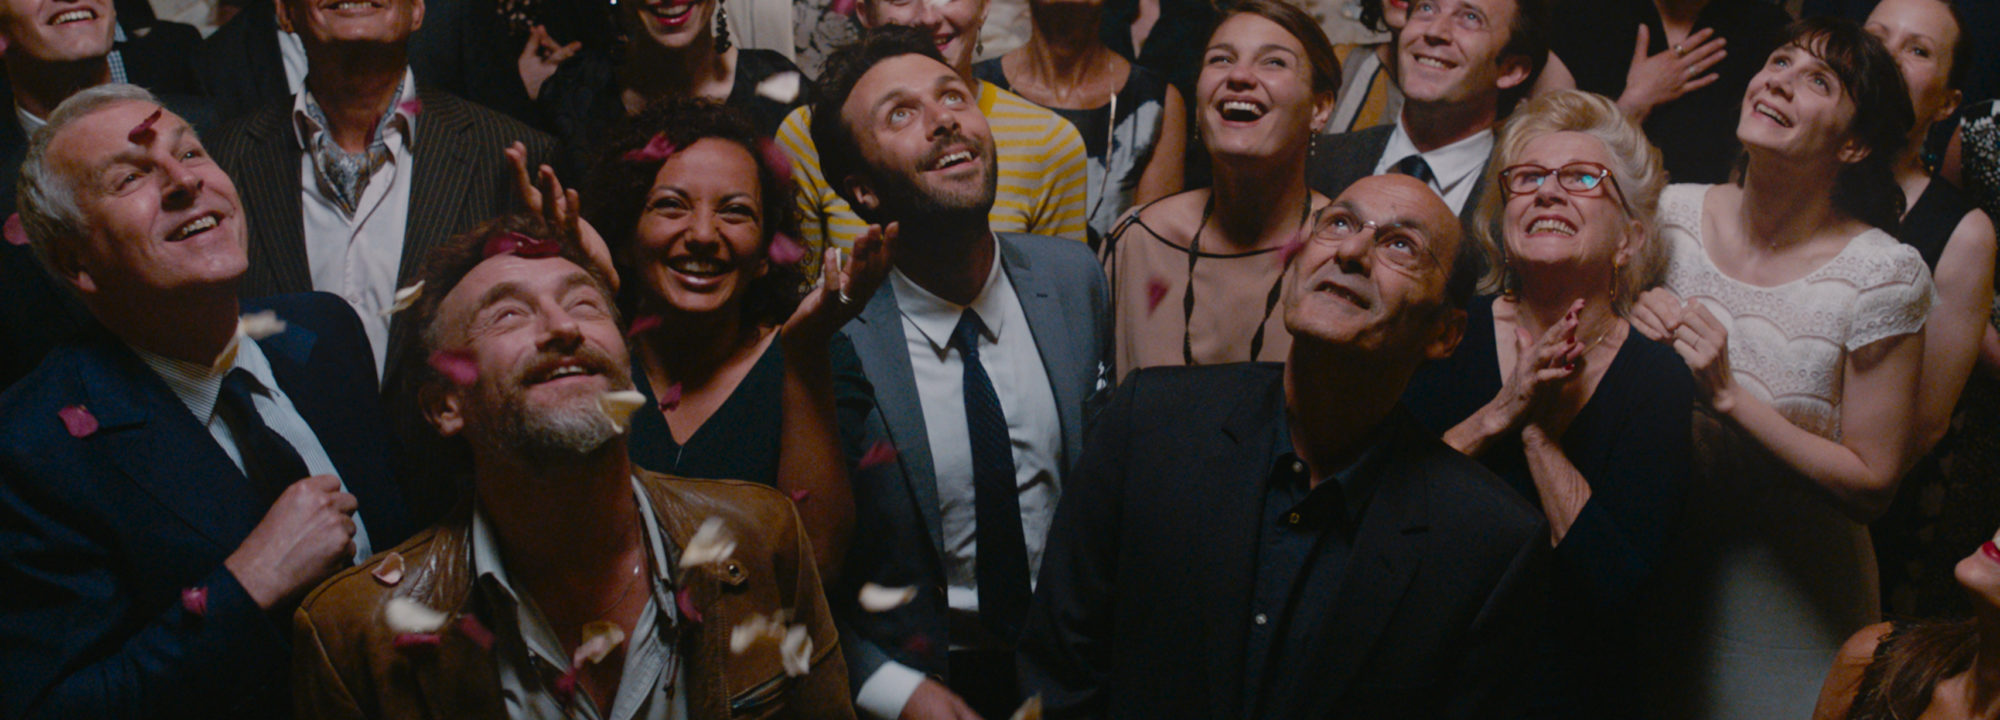 C'est la vie: un wedding movie sull'arte d'arrangiarsi